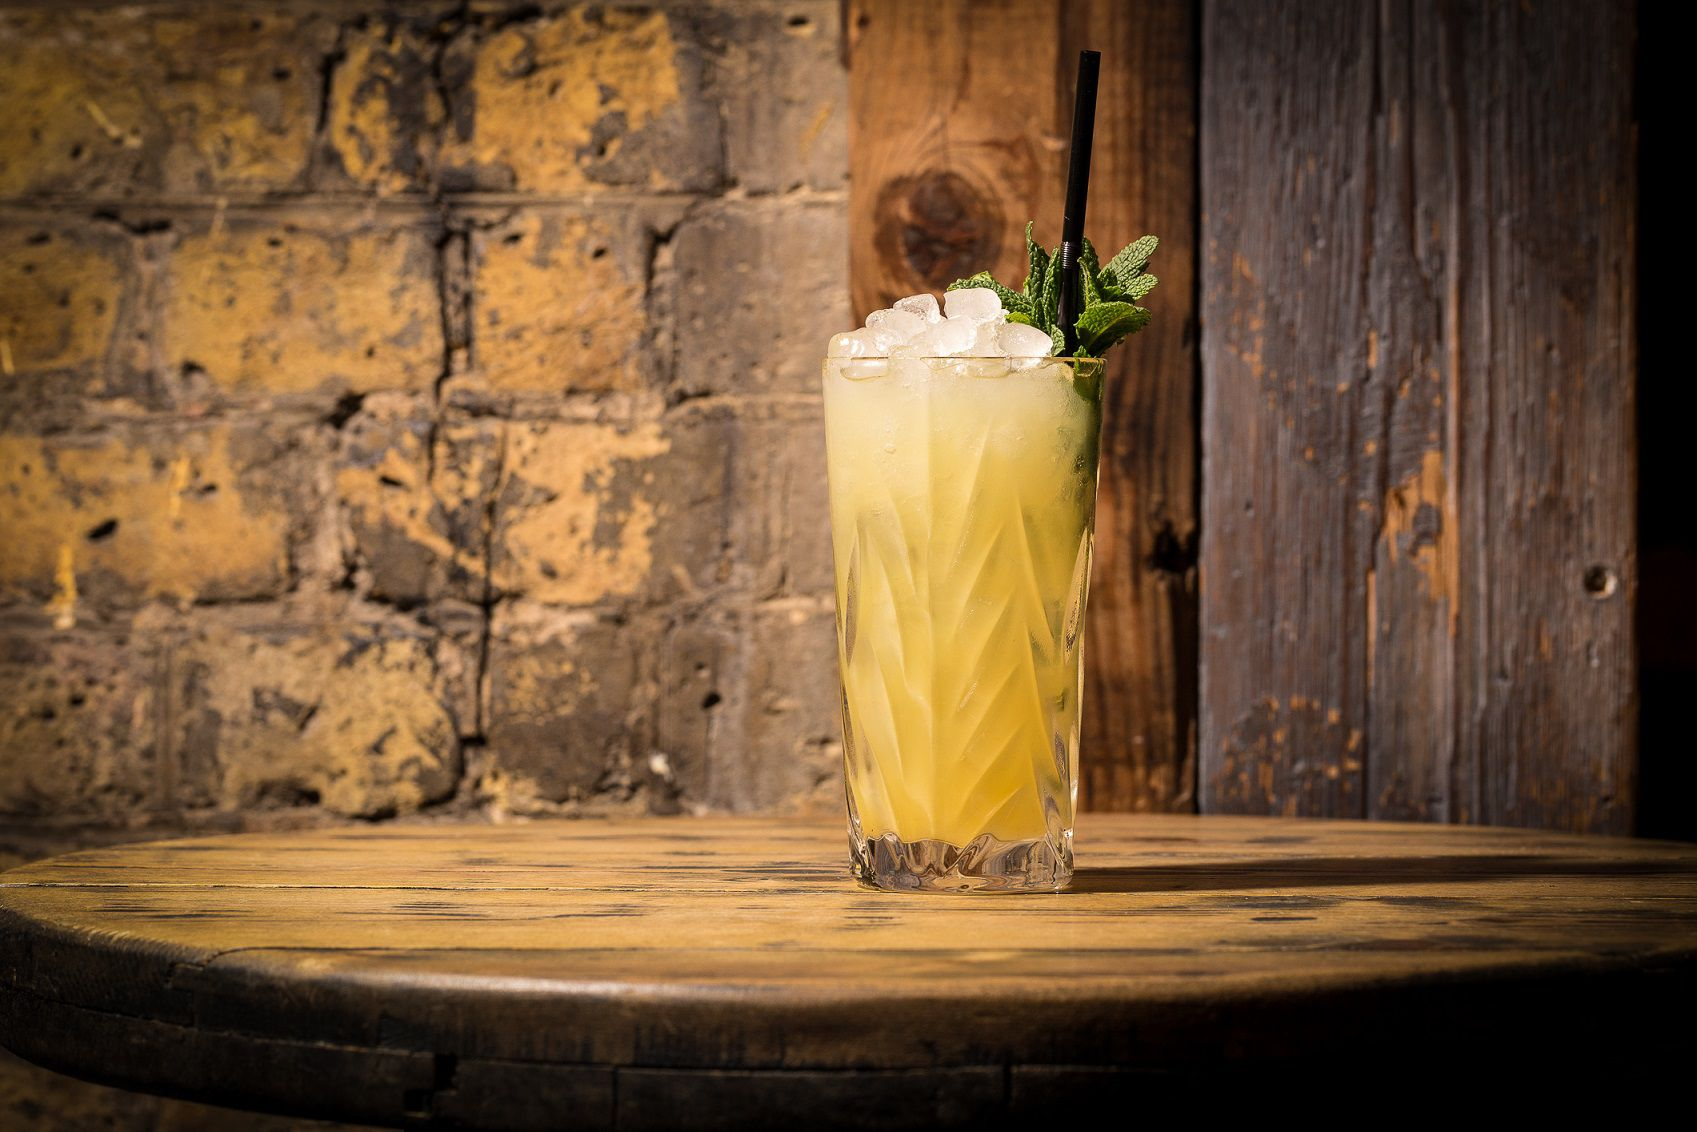 9 St Patrick's Day drinks that aren't just a pint of Guinness